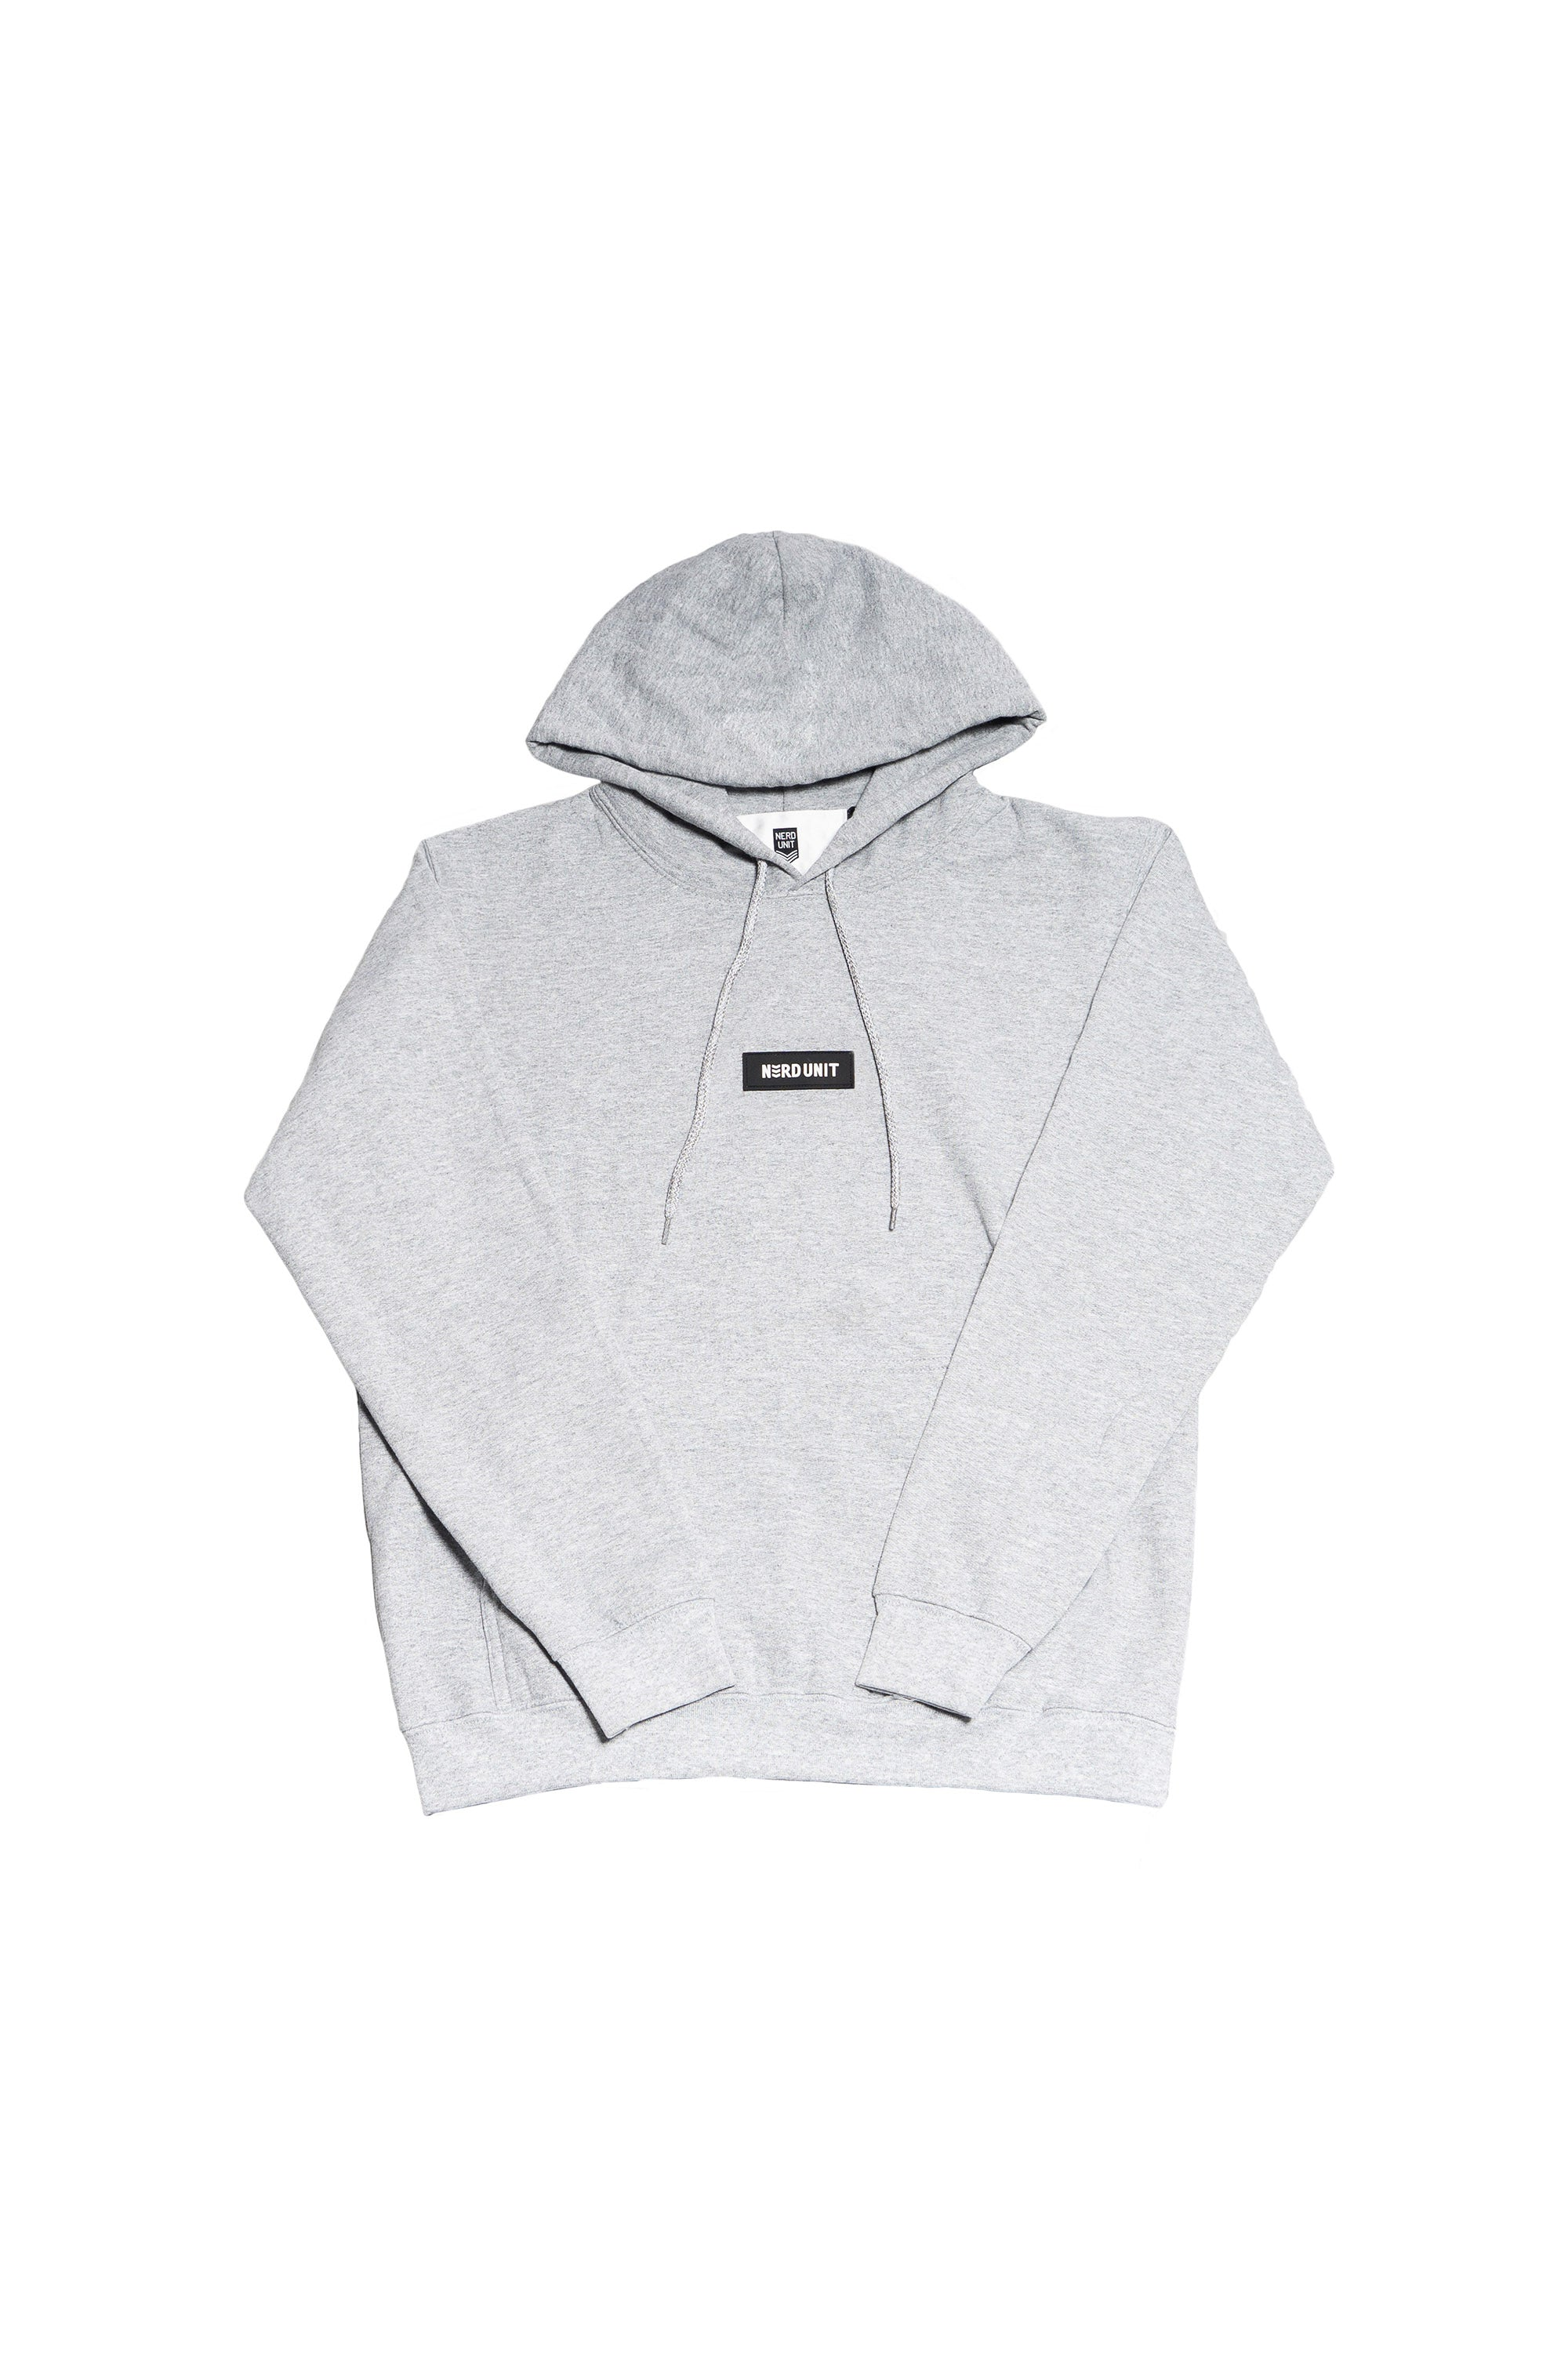 FW18 STATEMENT HOODIE (FW18 ステートメントフーディ)